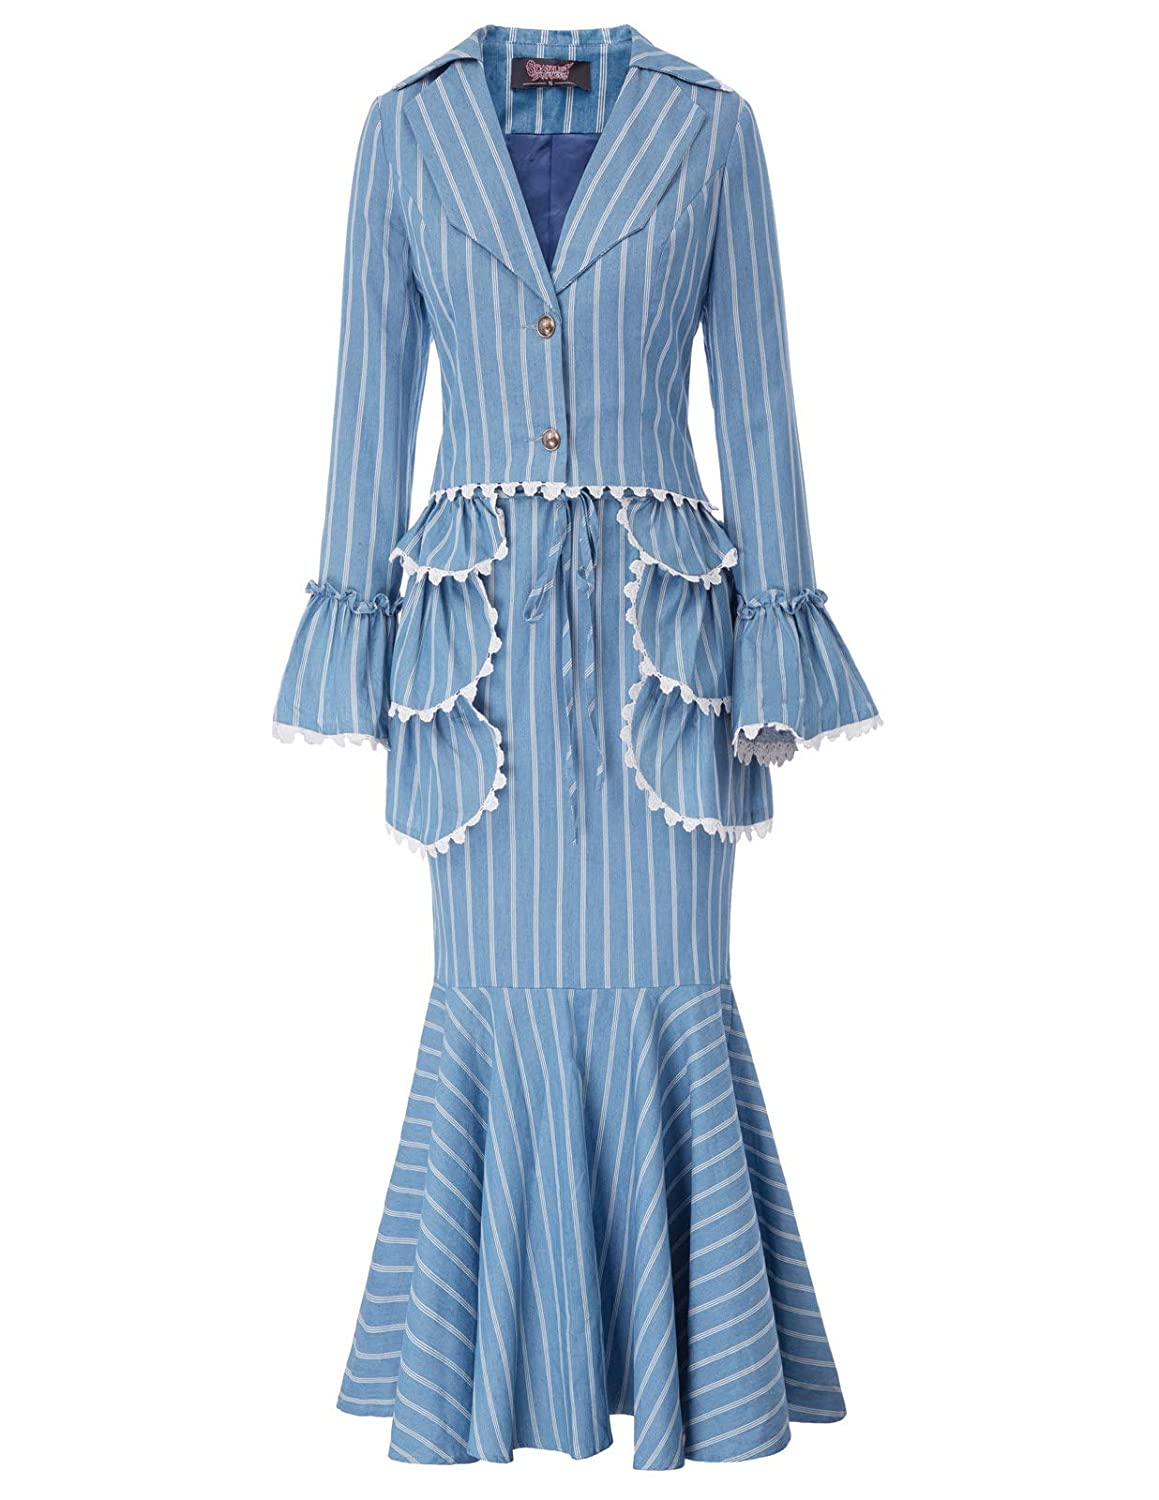 1900s, 1910s, WW1, Titanic Costumes Women 3pcs Set Vintage Victorian Costume Edwardian Suit Coat+Skirt+Apron $59.99 AT vintagedancer.com